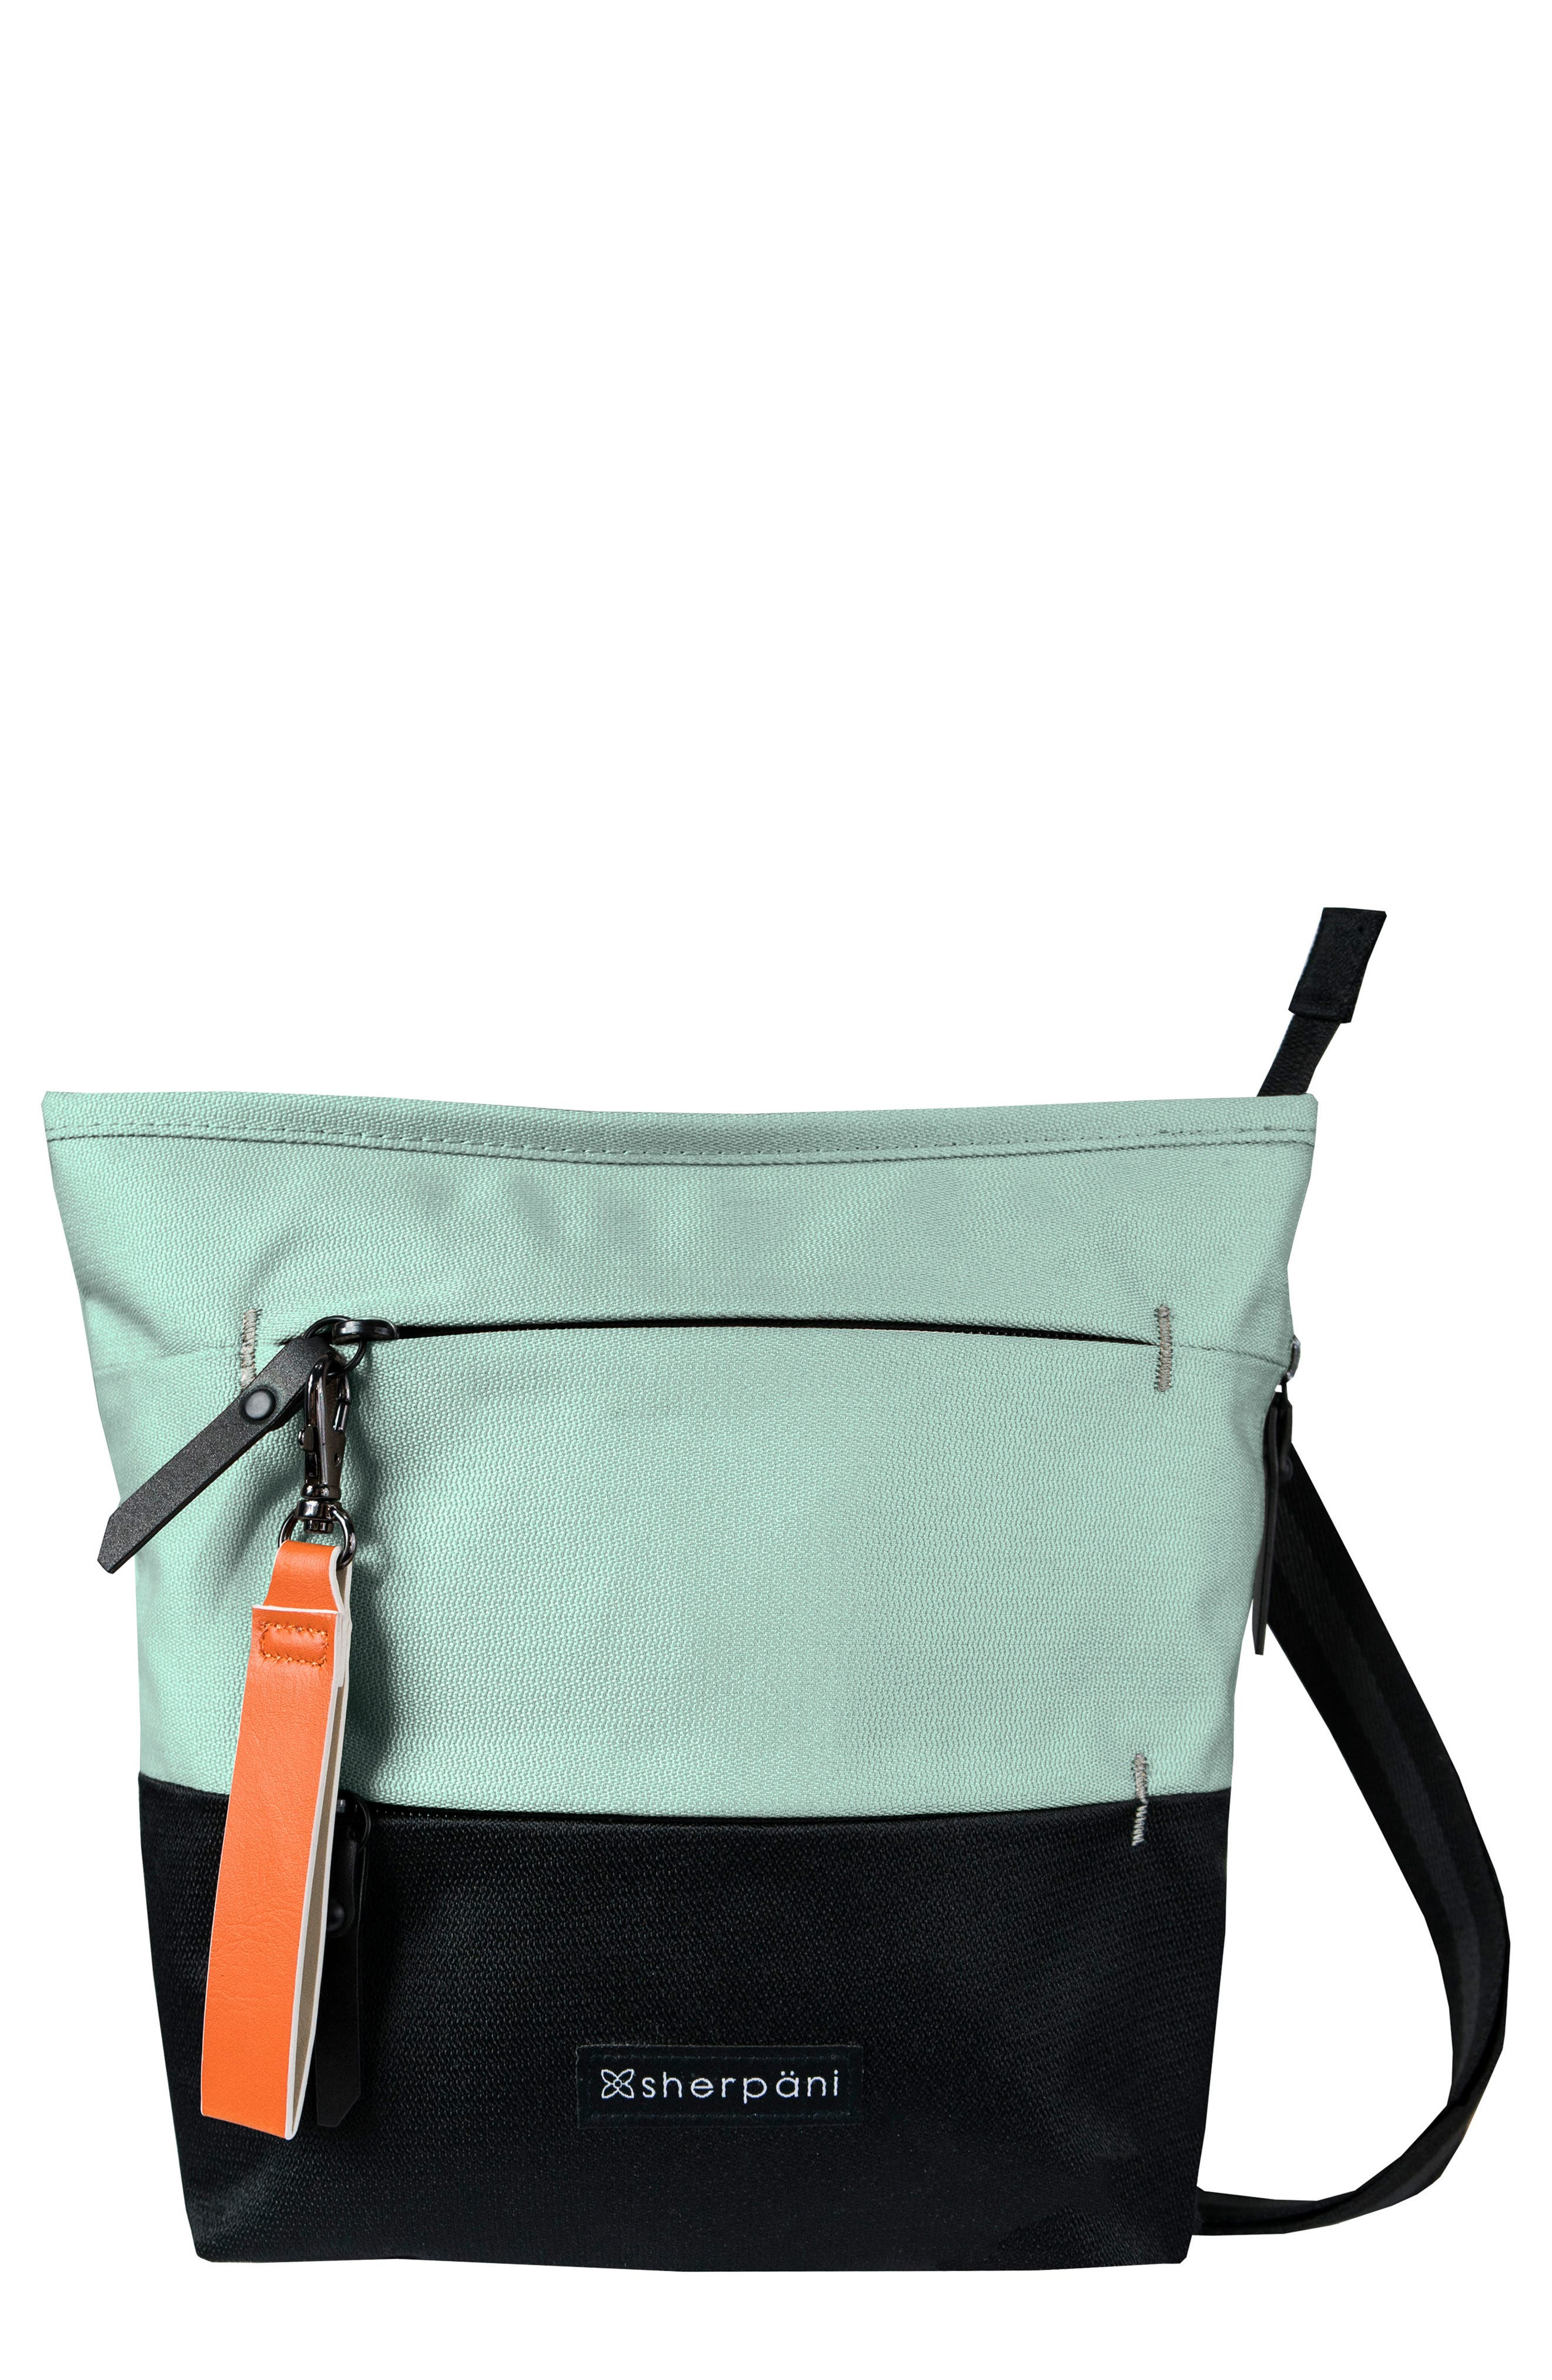 Main Image - Sherpani Medium Sadie Crossbody Bag